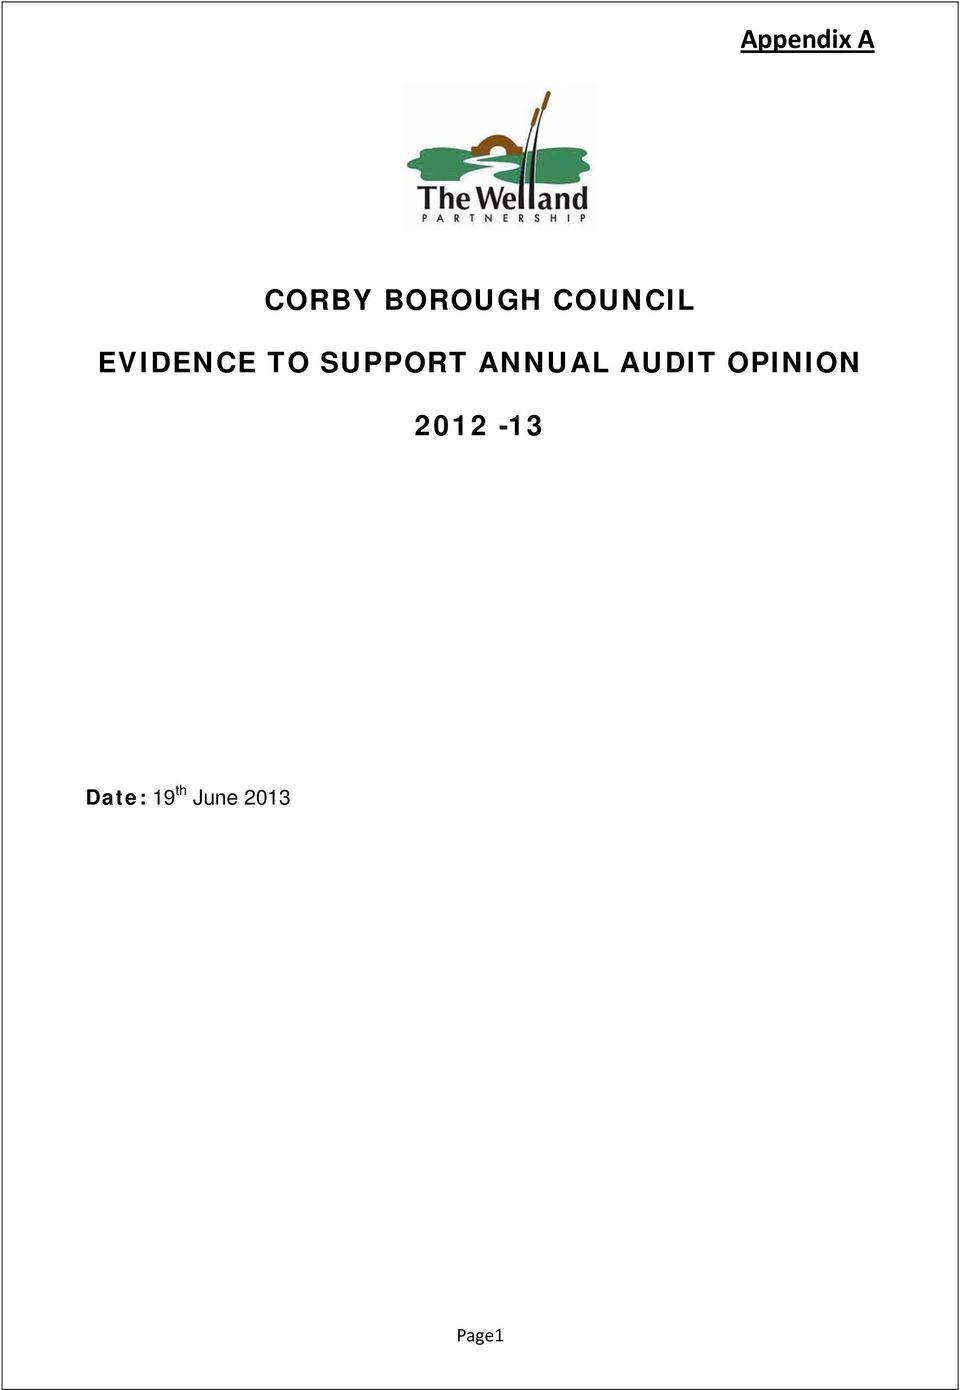 ANNUAL AUDIT OPINION